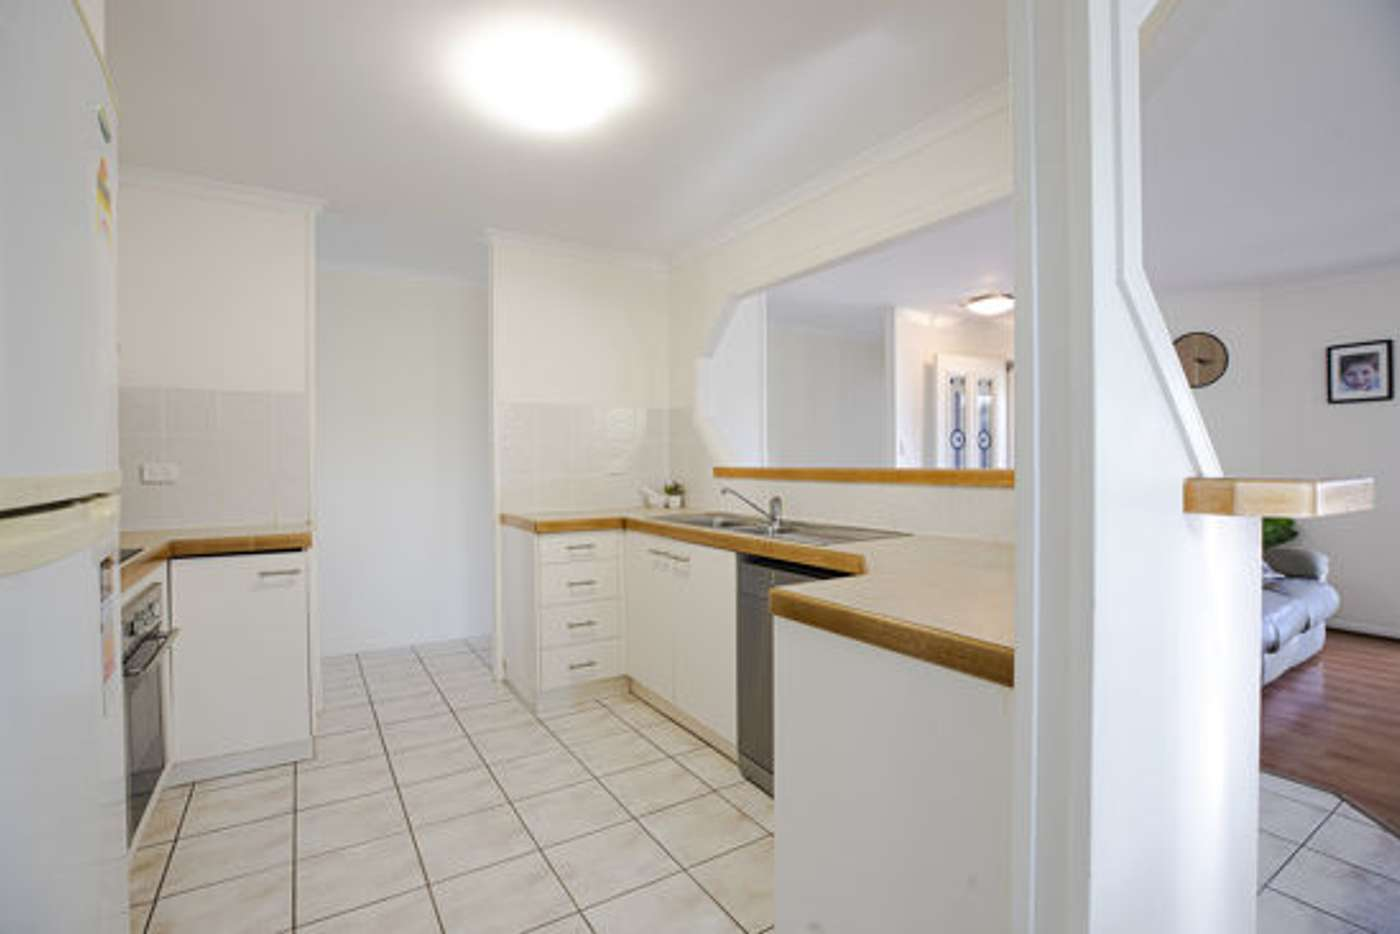 Seventh view of Homely house listing, 67 Ben Nevis Street, Beaconsfield QLD 4740